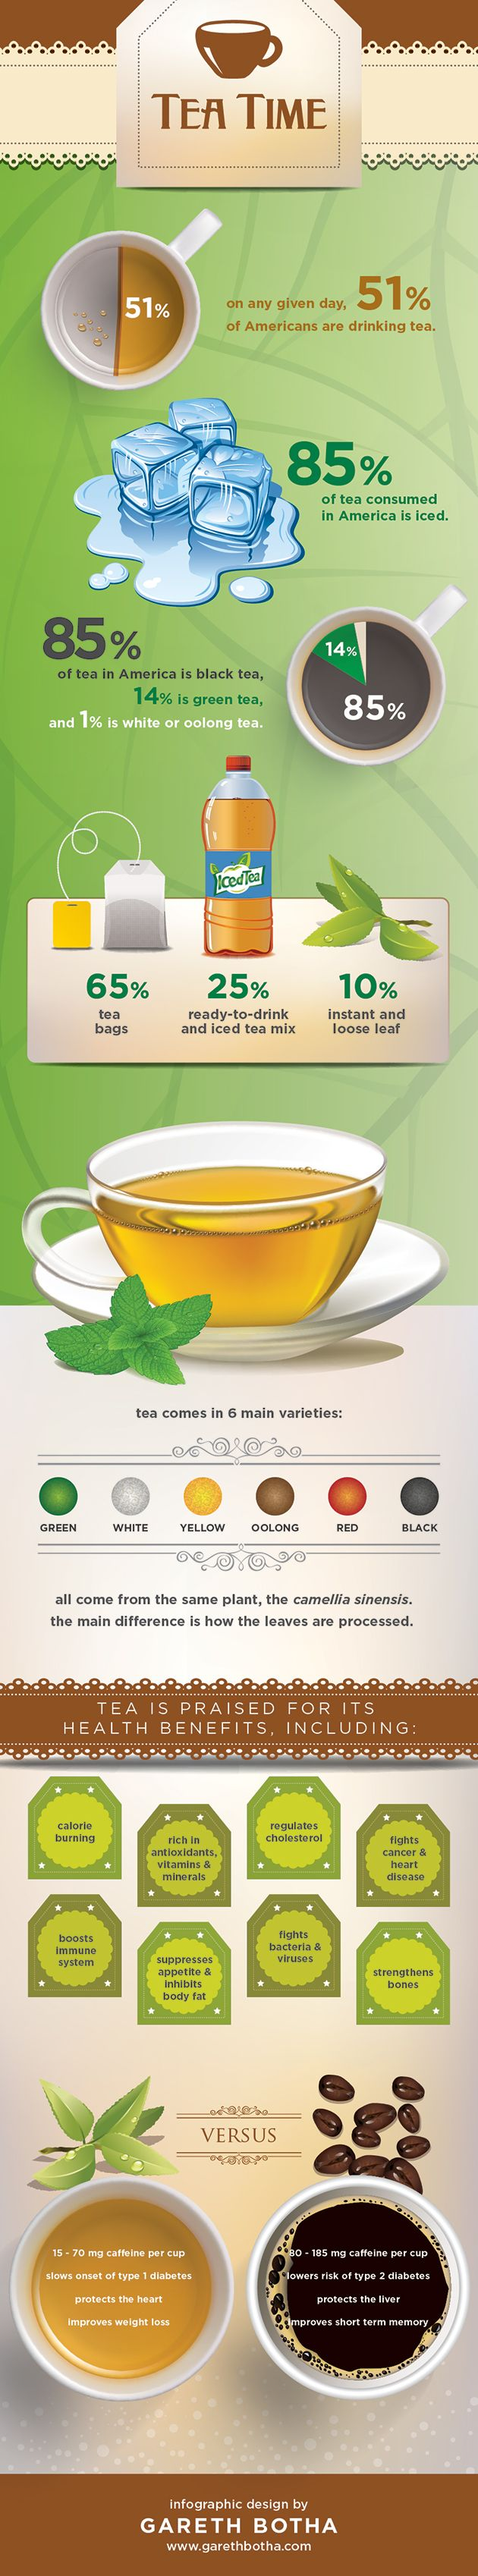 How #Americans consume #tea - Discover more in this #infographic - http://www.finedininglovers.com/blog/food-drinks/how-americans-consume-tea-infographic/